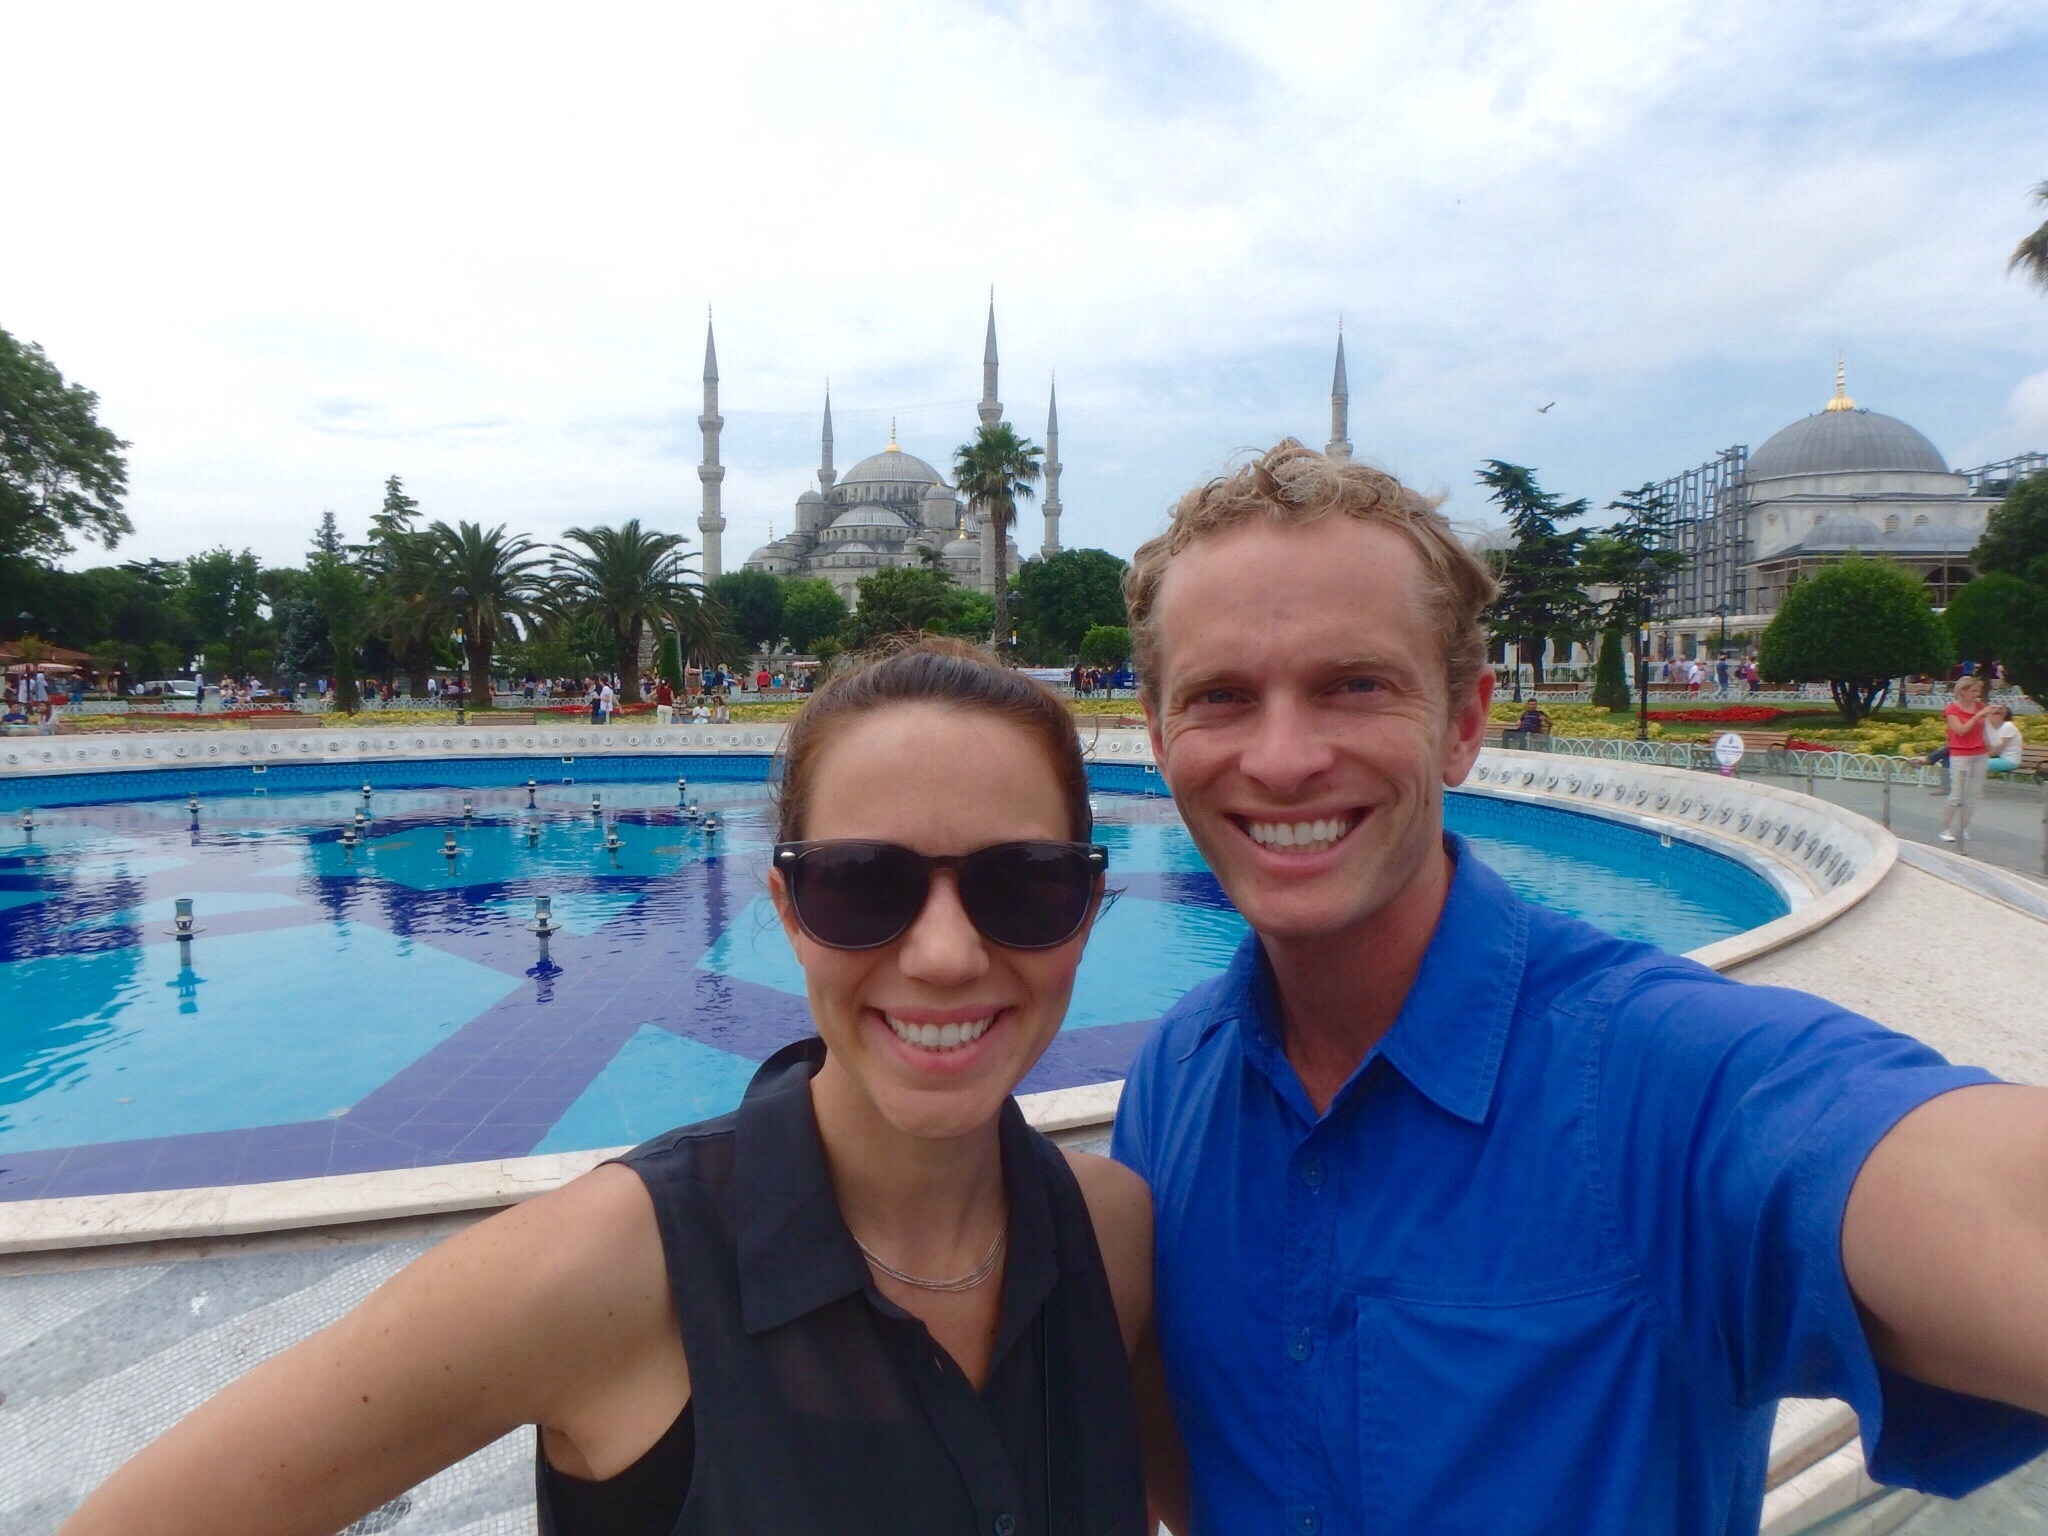 Enjoying the city is an understatement! The Blue Mosque is in the background.